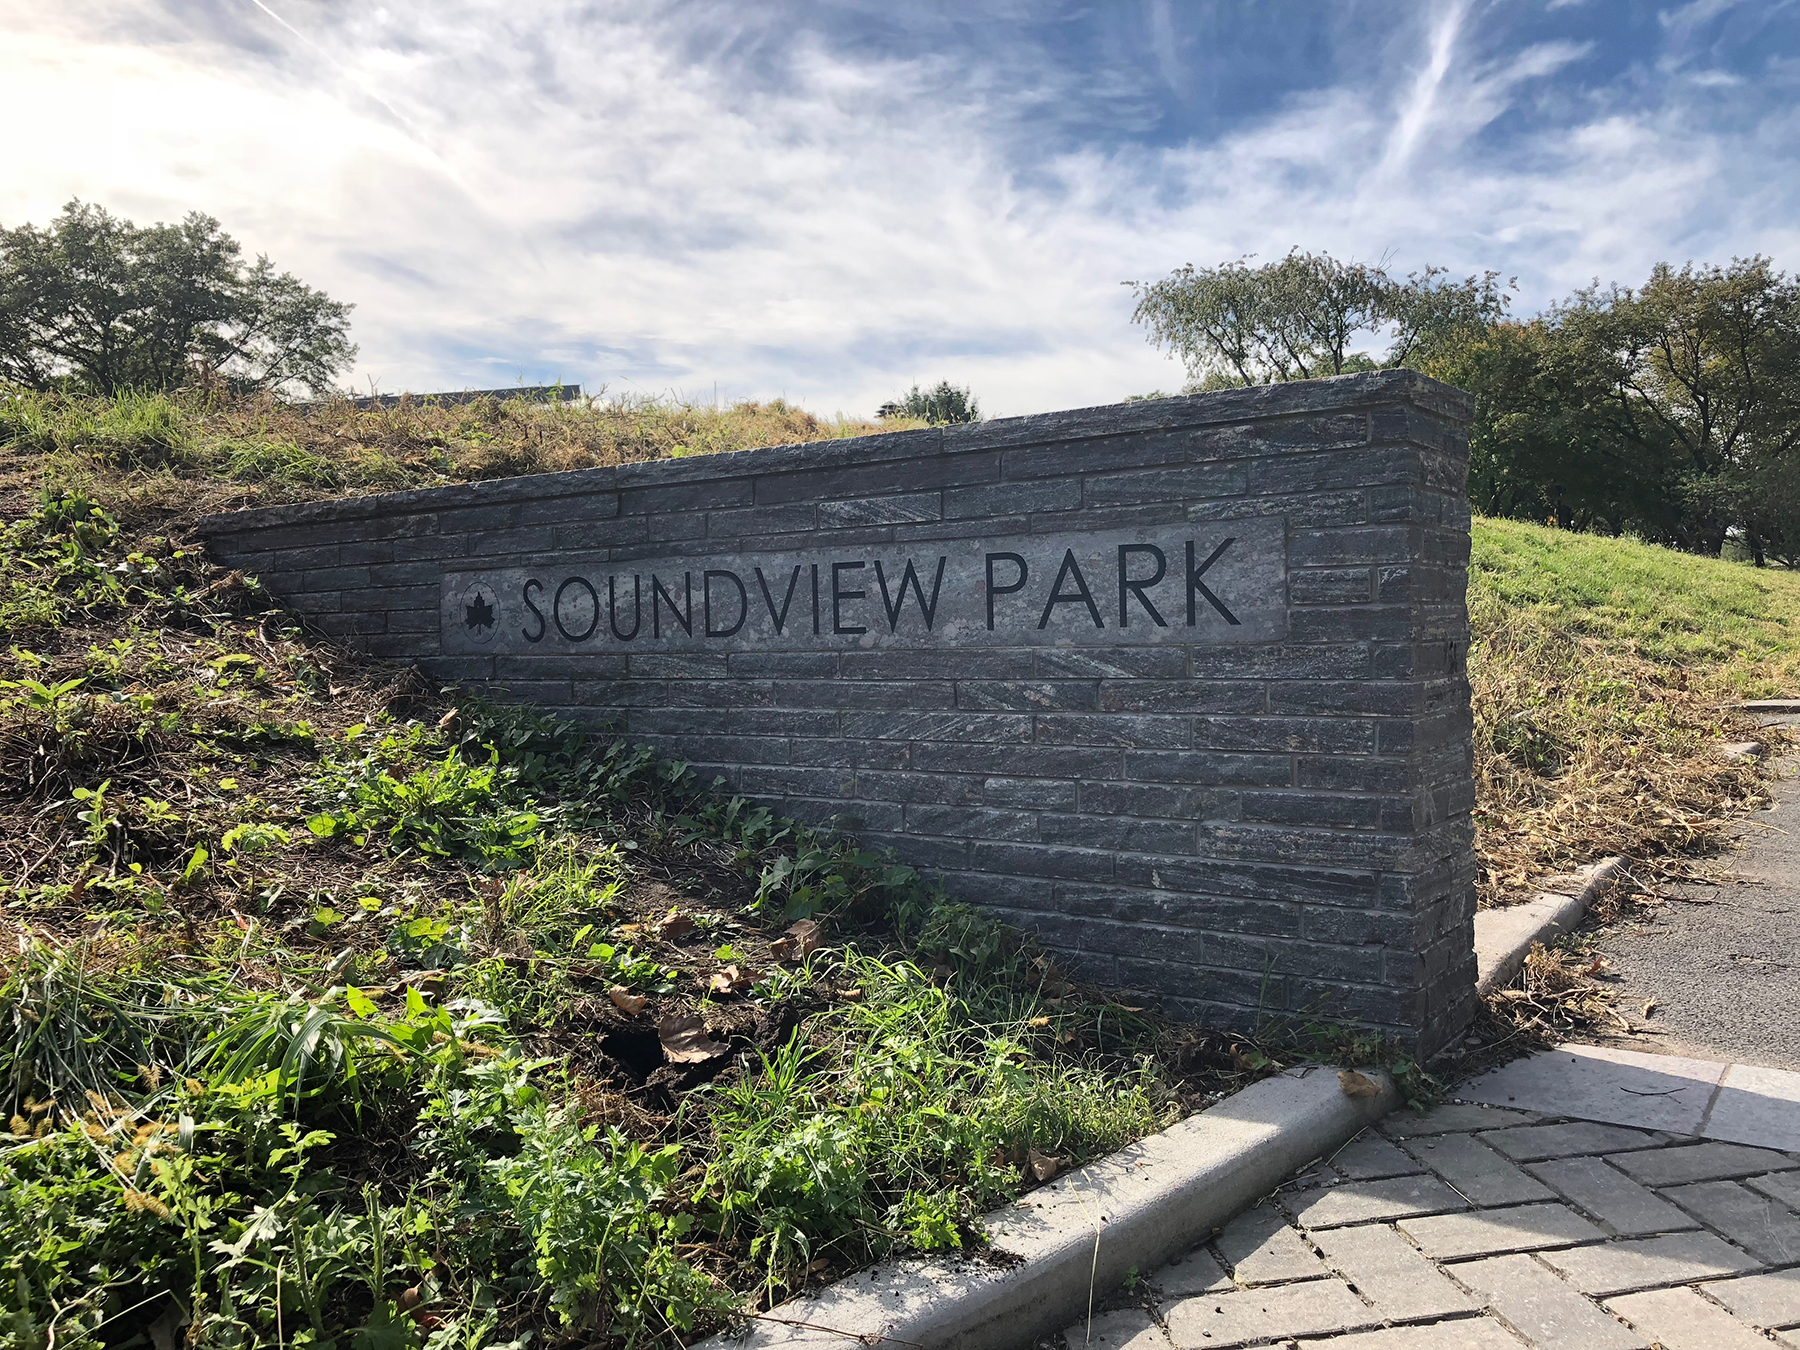 Soundview Park stone sign entrance